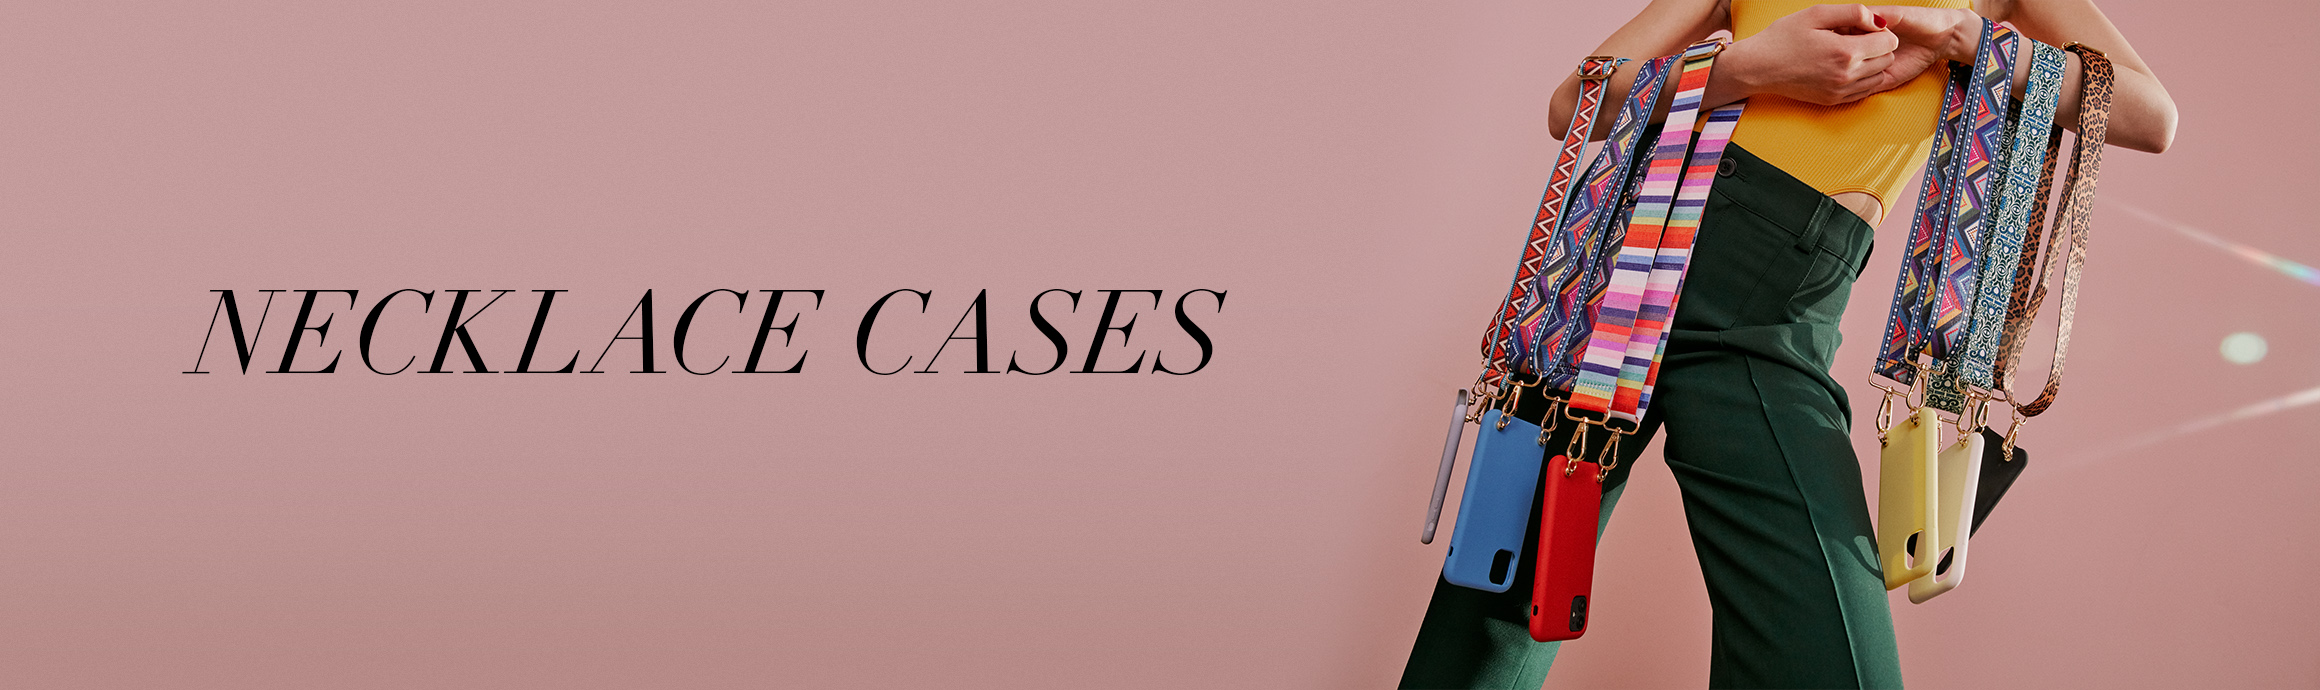 necklace cases